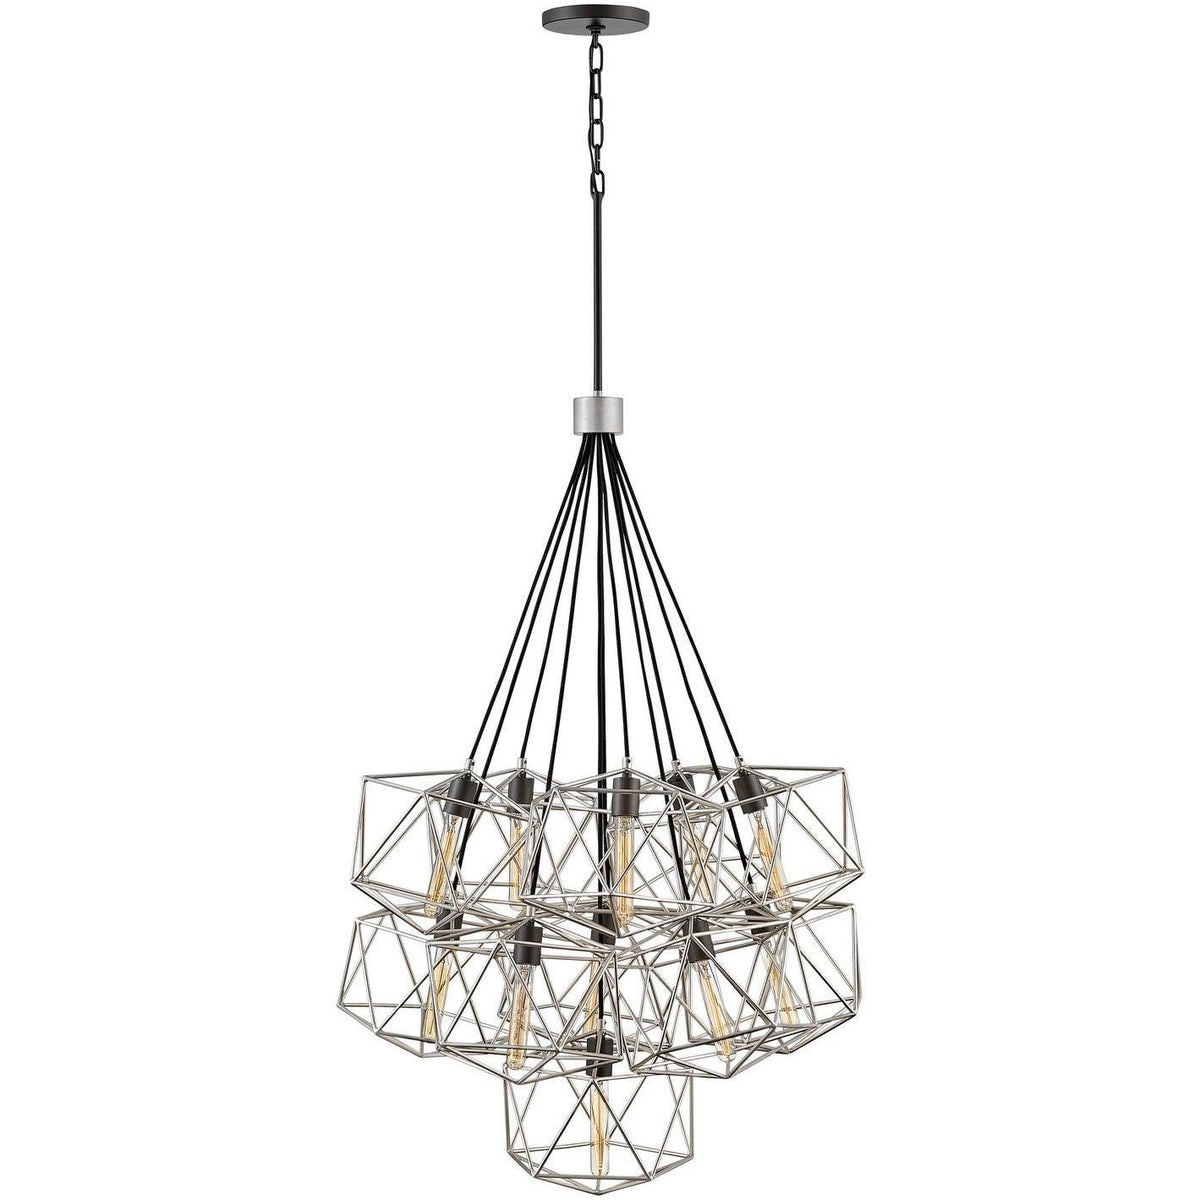 Hinkley Canada - 3029GG - 11 Light Chandelier - Astrid - Glacial